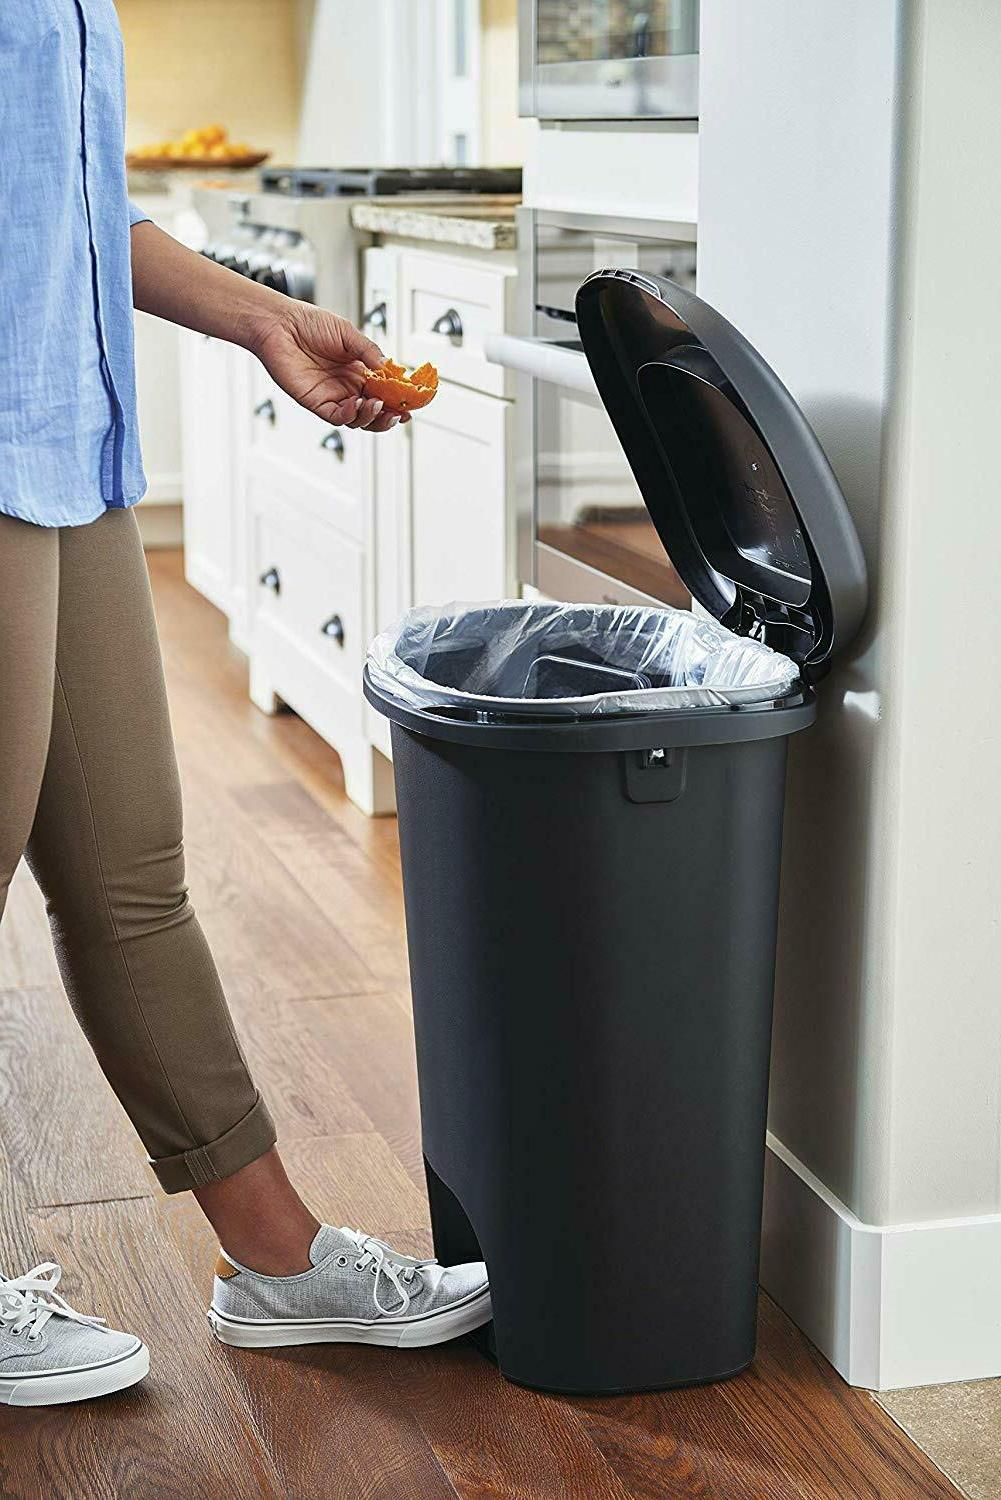 rubbermaid step-on lid trash can for home,kitchen,bathroom